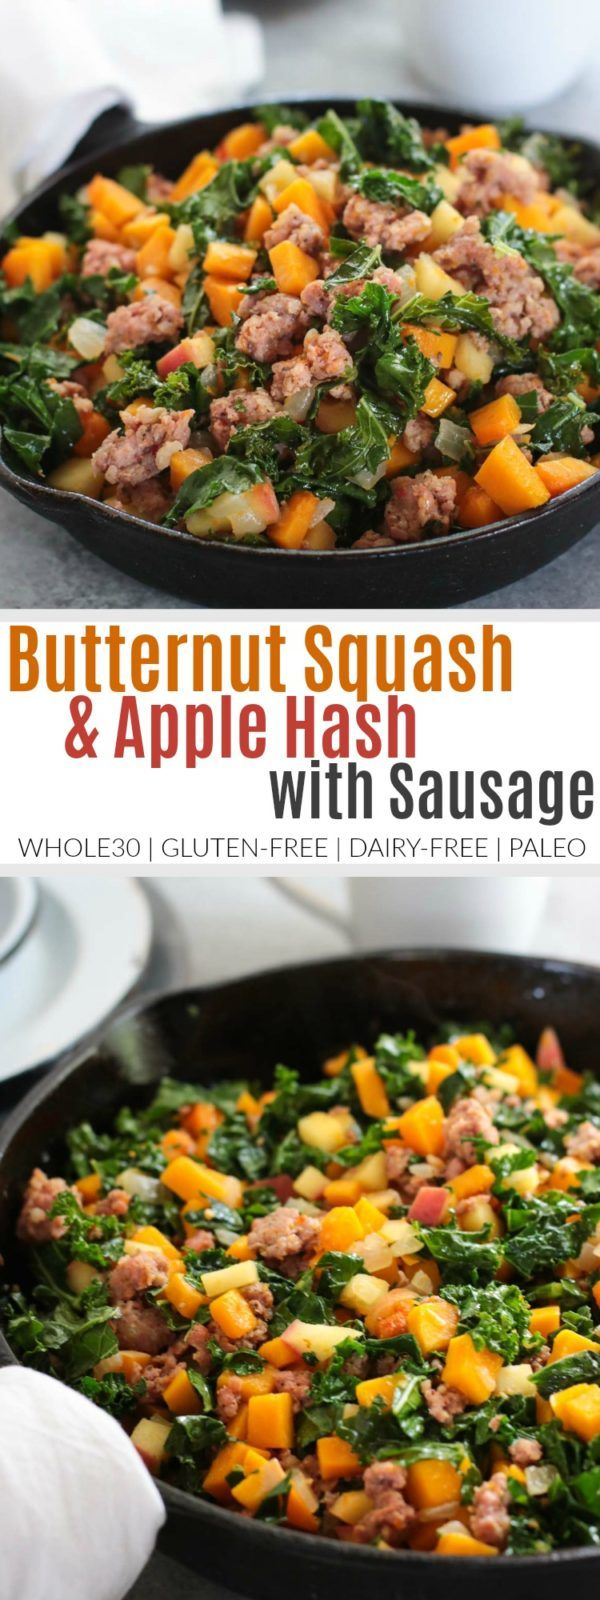 Butternut Squash and Apple Hash with Sausage | Some of our favorite fall flavors come together in this satisfying hash. Serve it with a side of sautéed vegetables for dinner or toss a fried egg on top for a hearty breakfast on a cool, crisp morning. | https://therealfoodrds.com/butternut-squash-and-apple-hash-with-sausage/